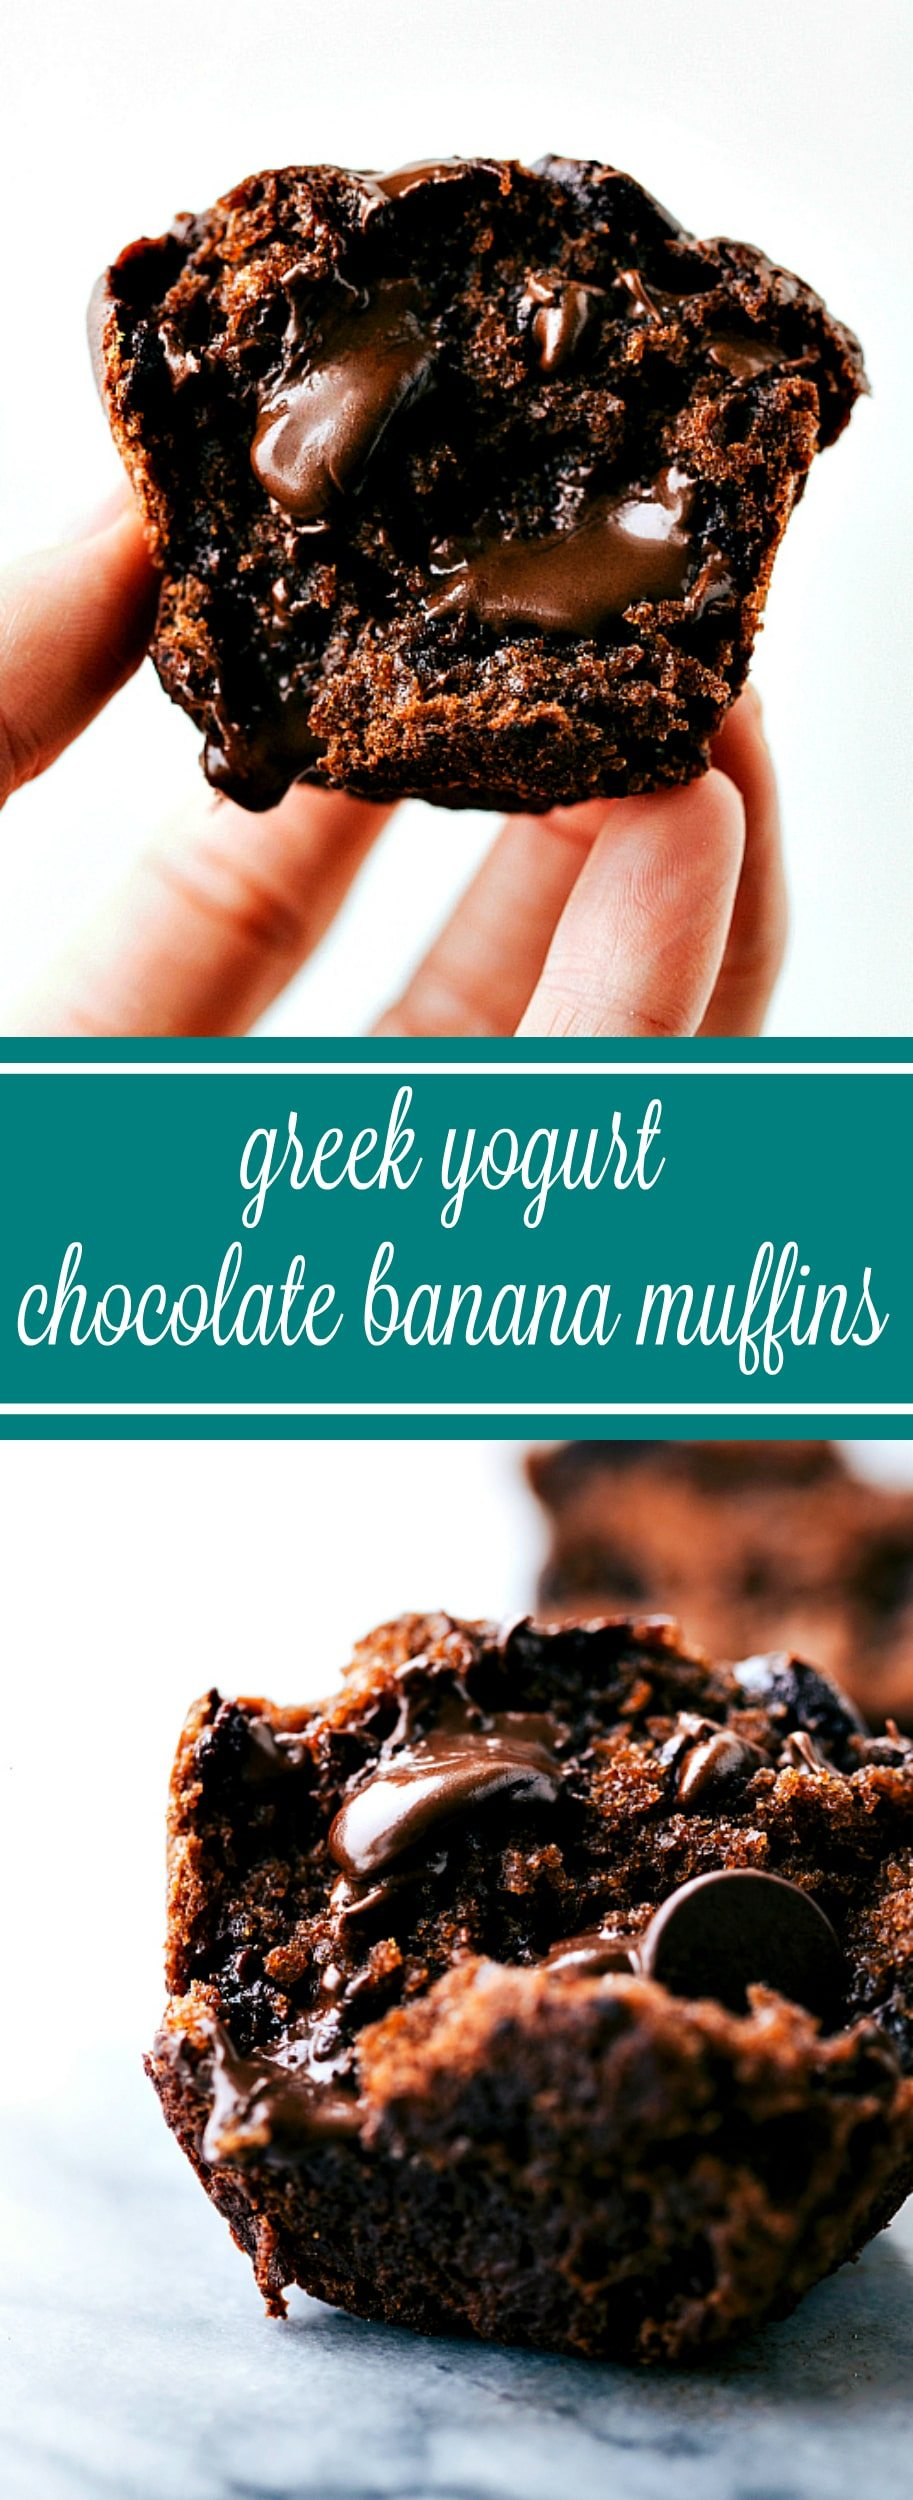 Greek Yogurt Chocolate Banana Muffins - Chelsea's Messy Apron